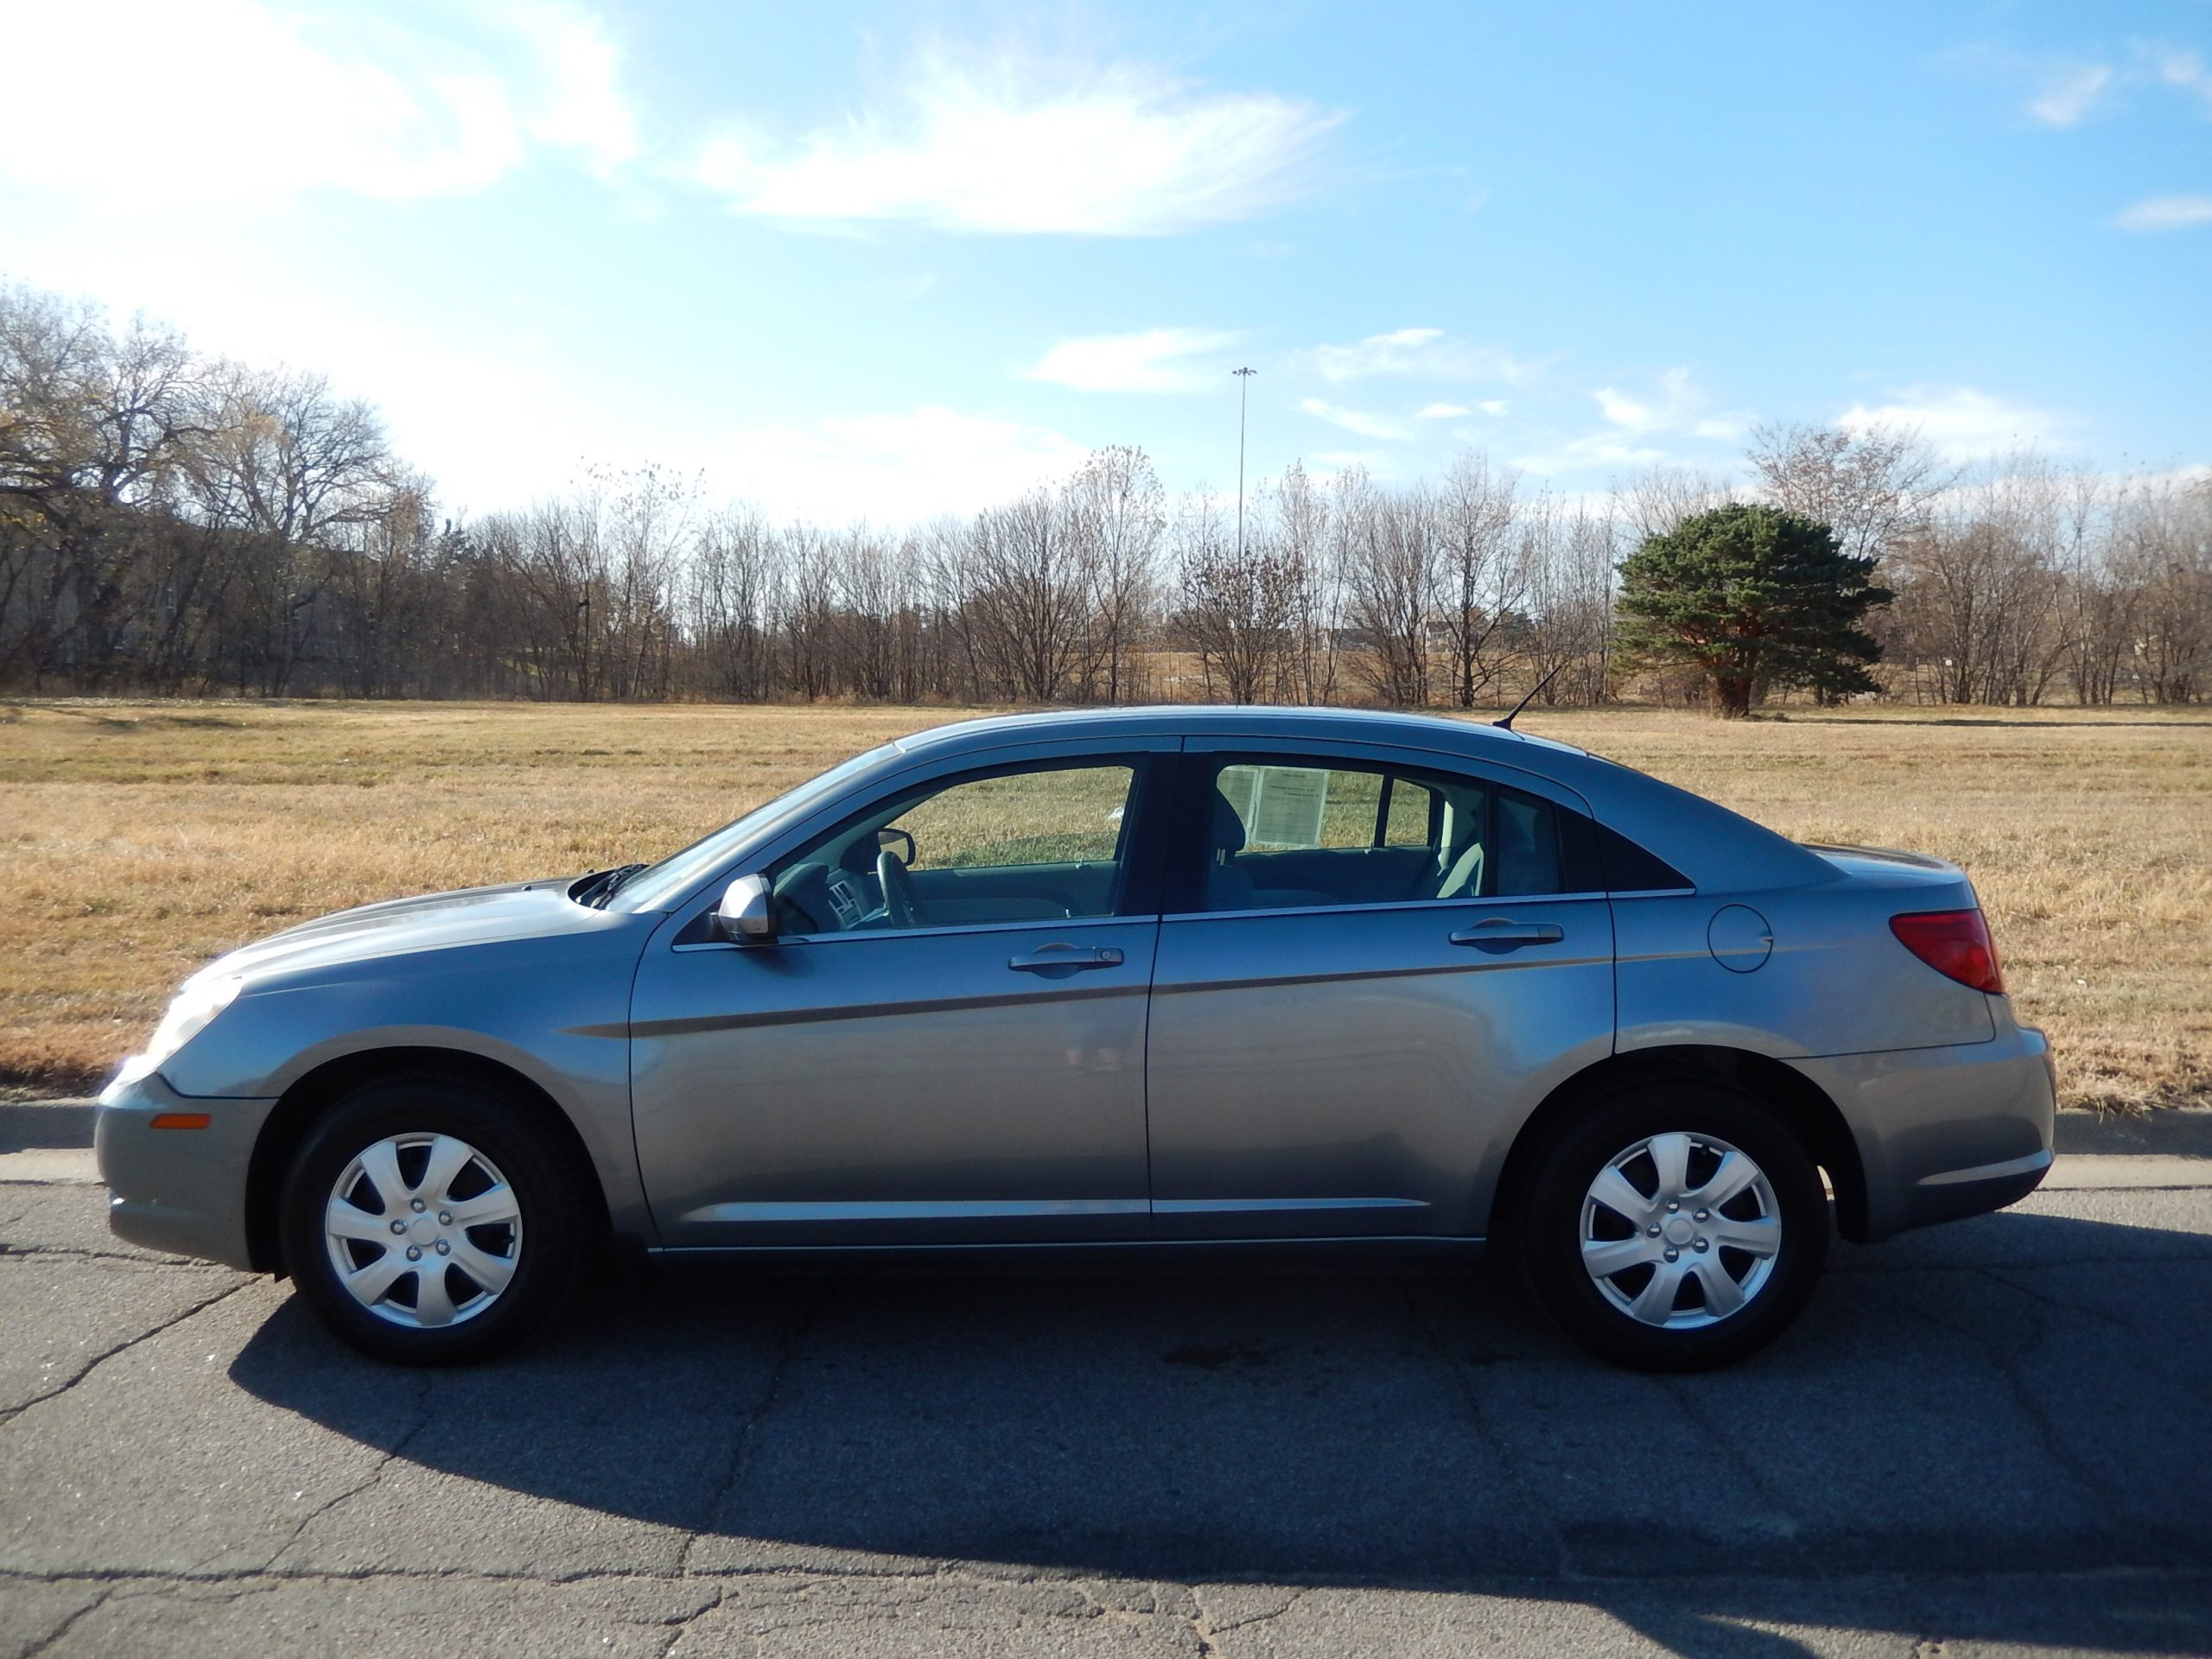 Used 2007 Chrysler Sebring